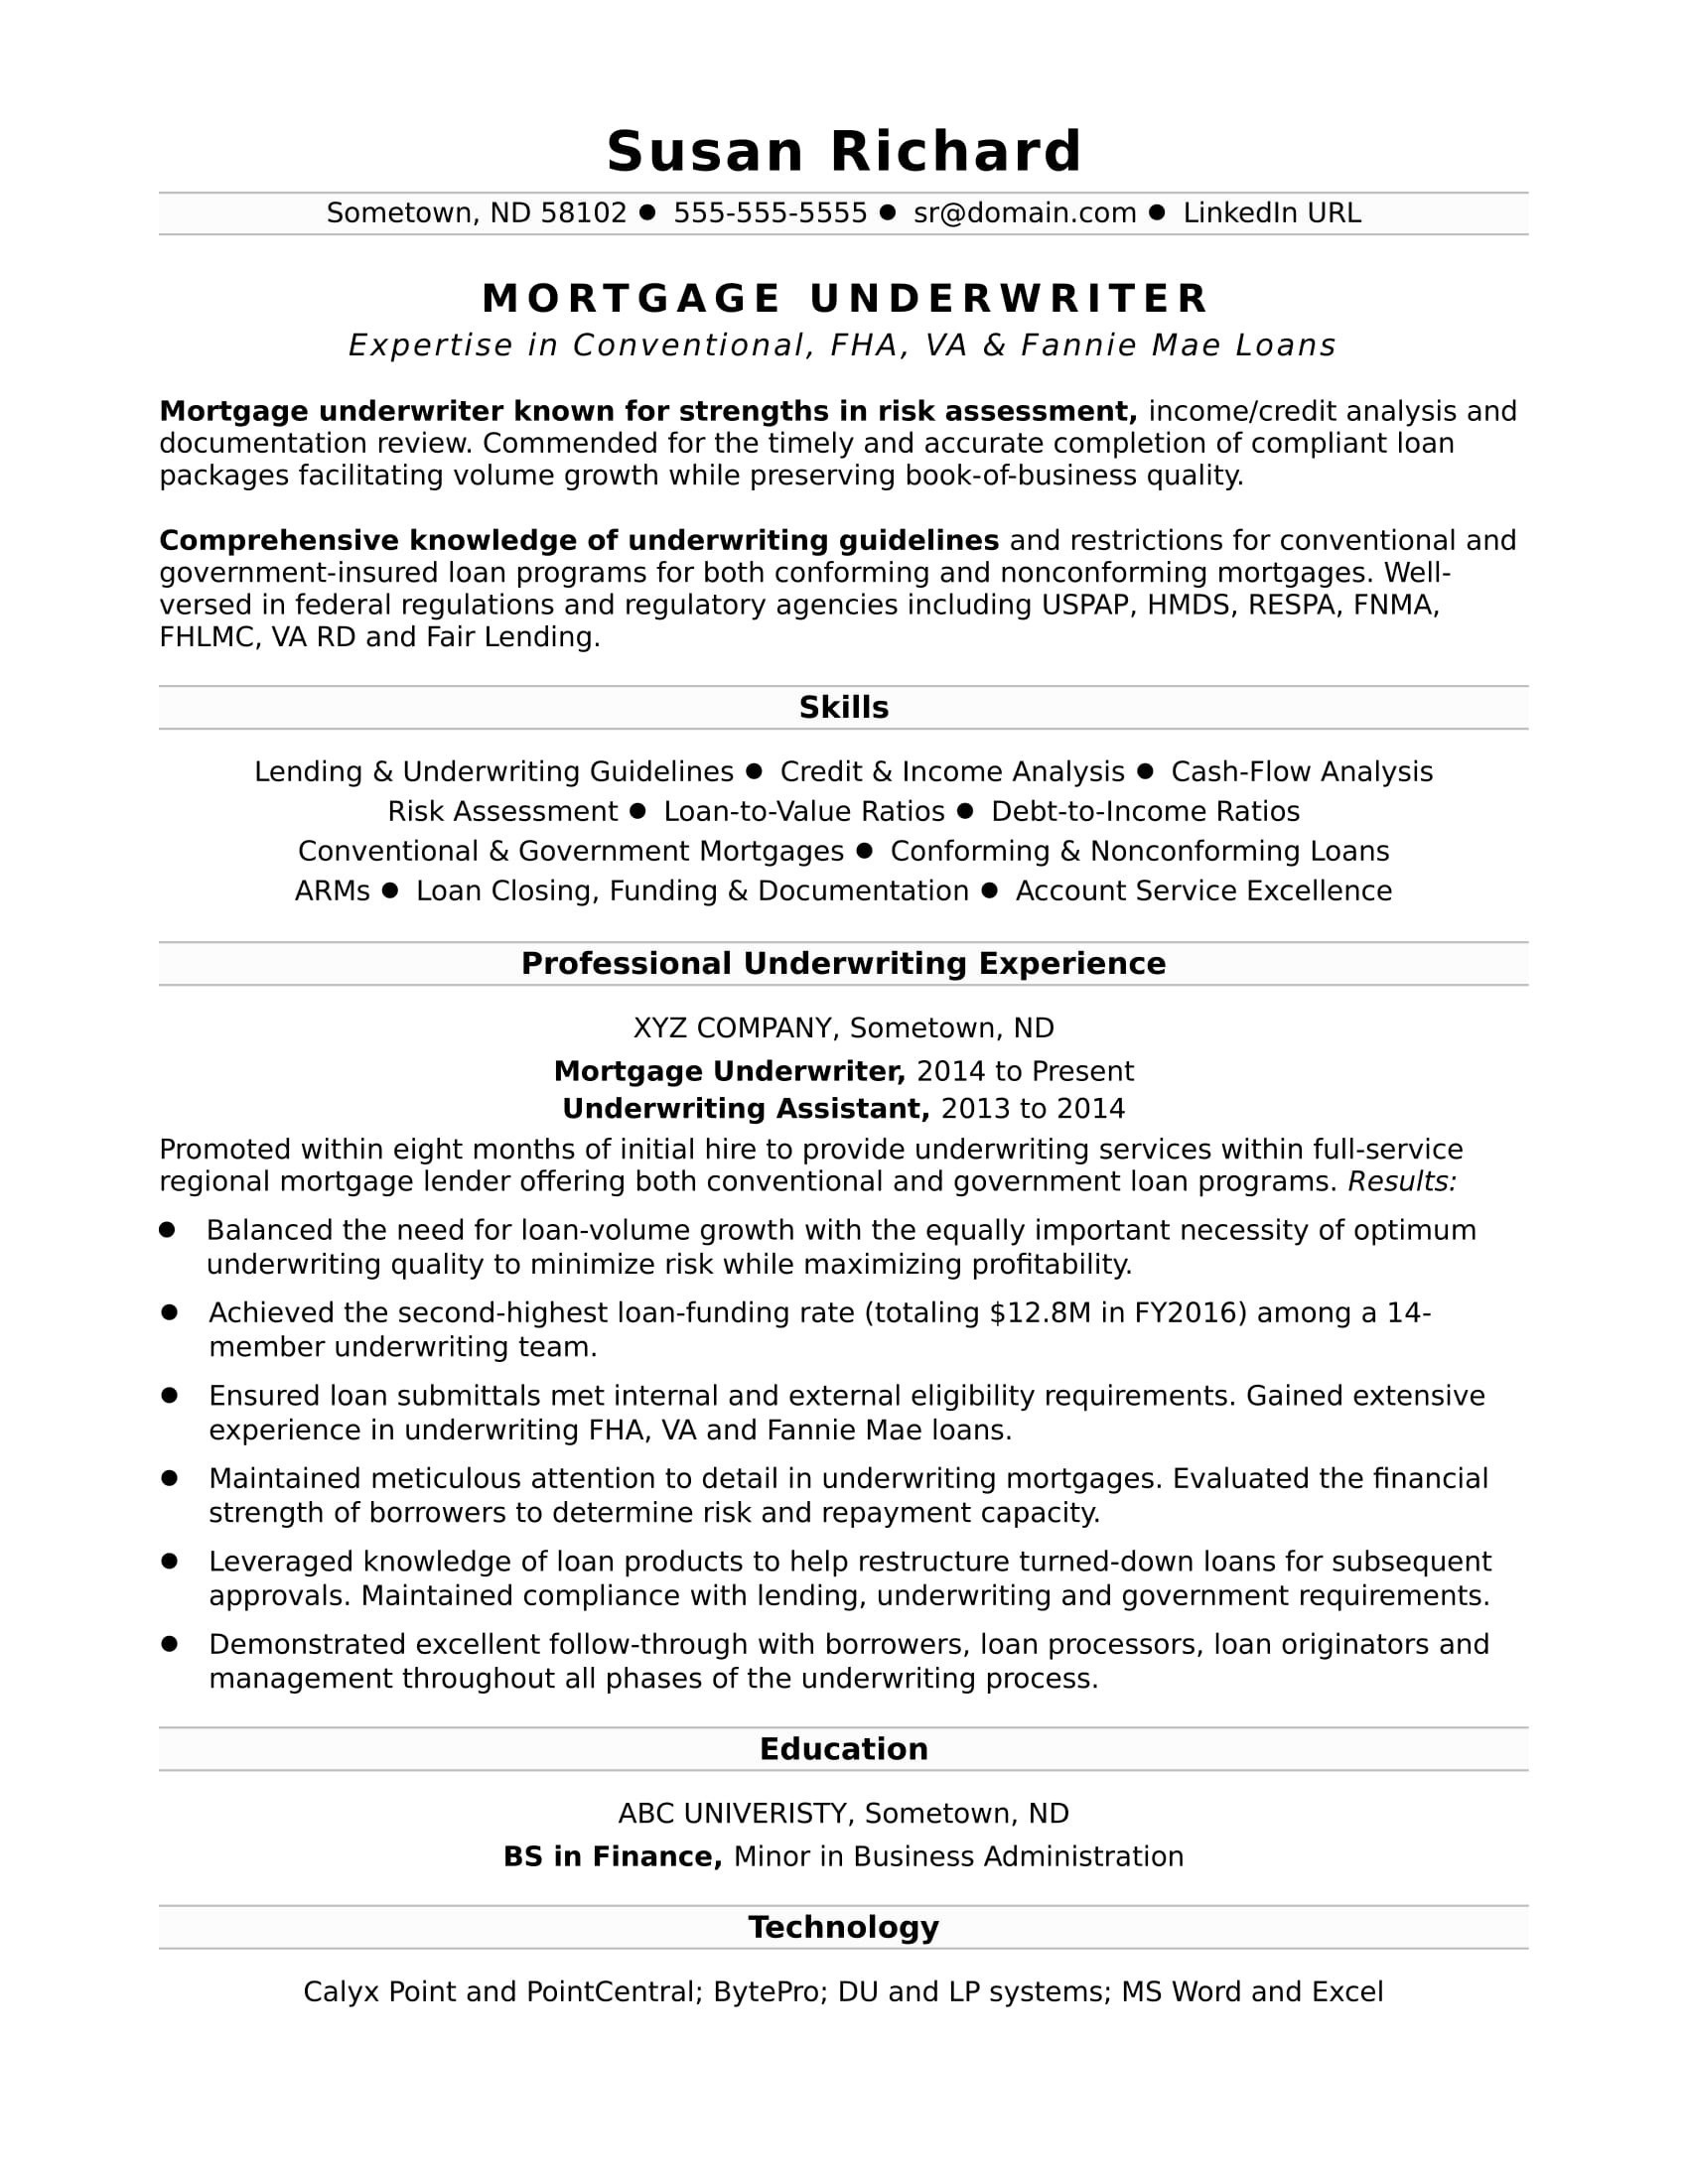 Cover Letter Design Template - Free Resume Search In India Unique New Programmer Resume Lovely